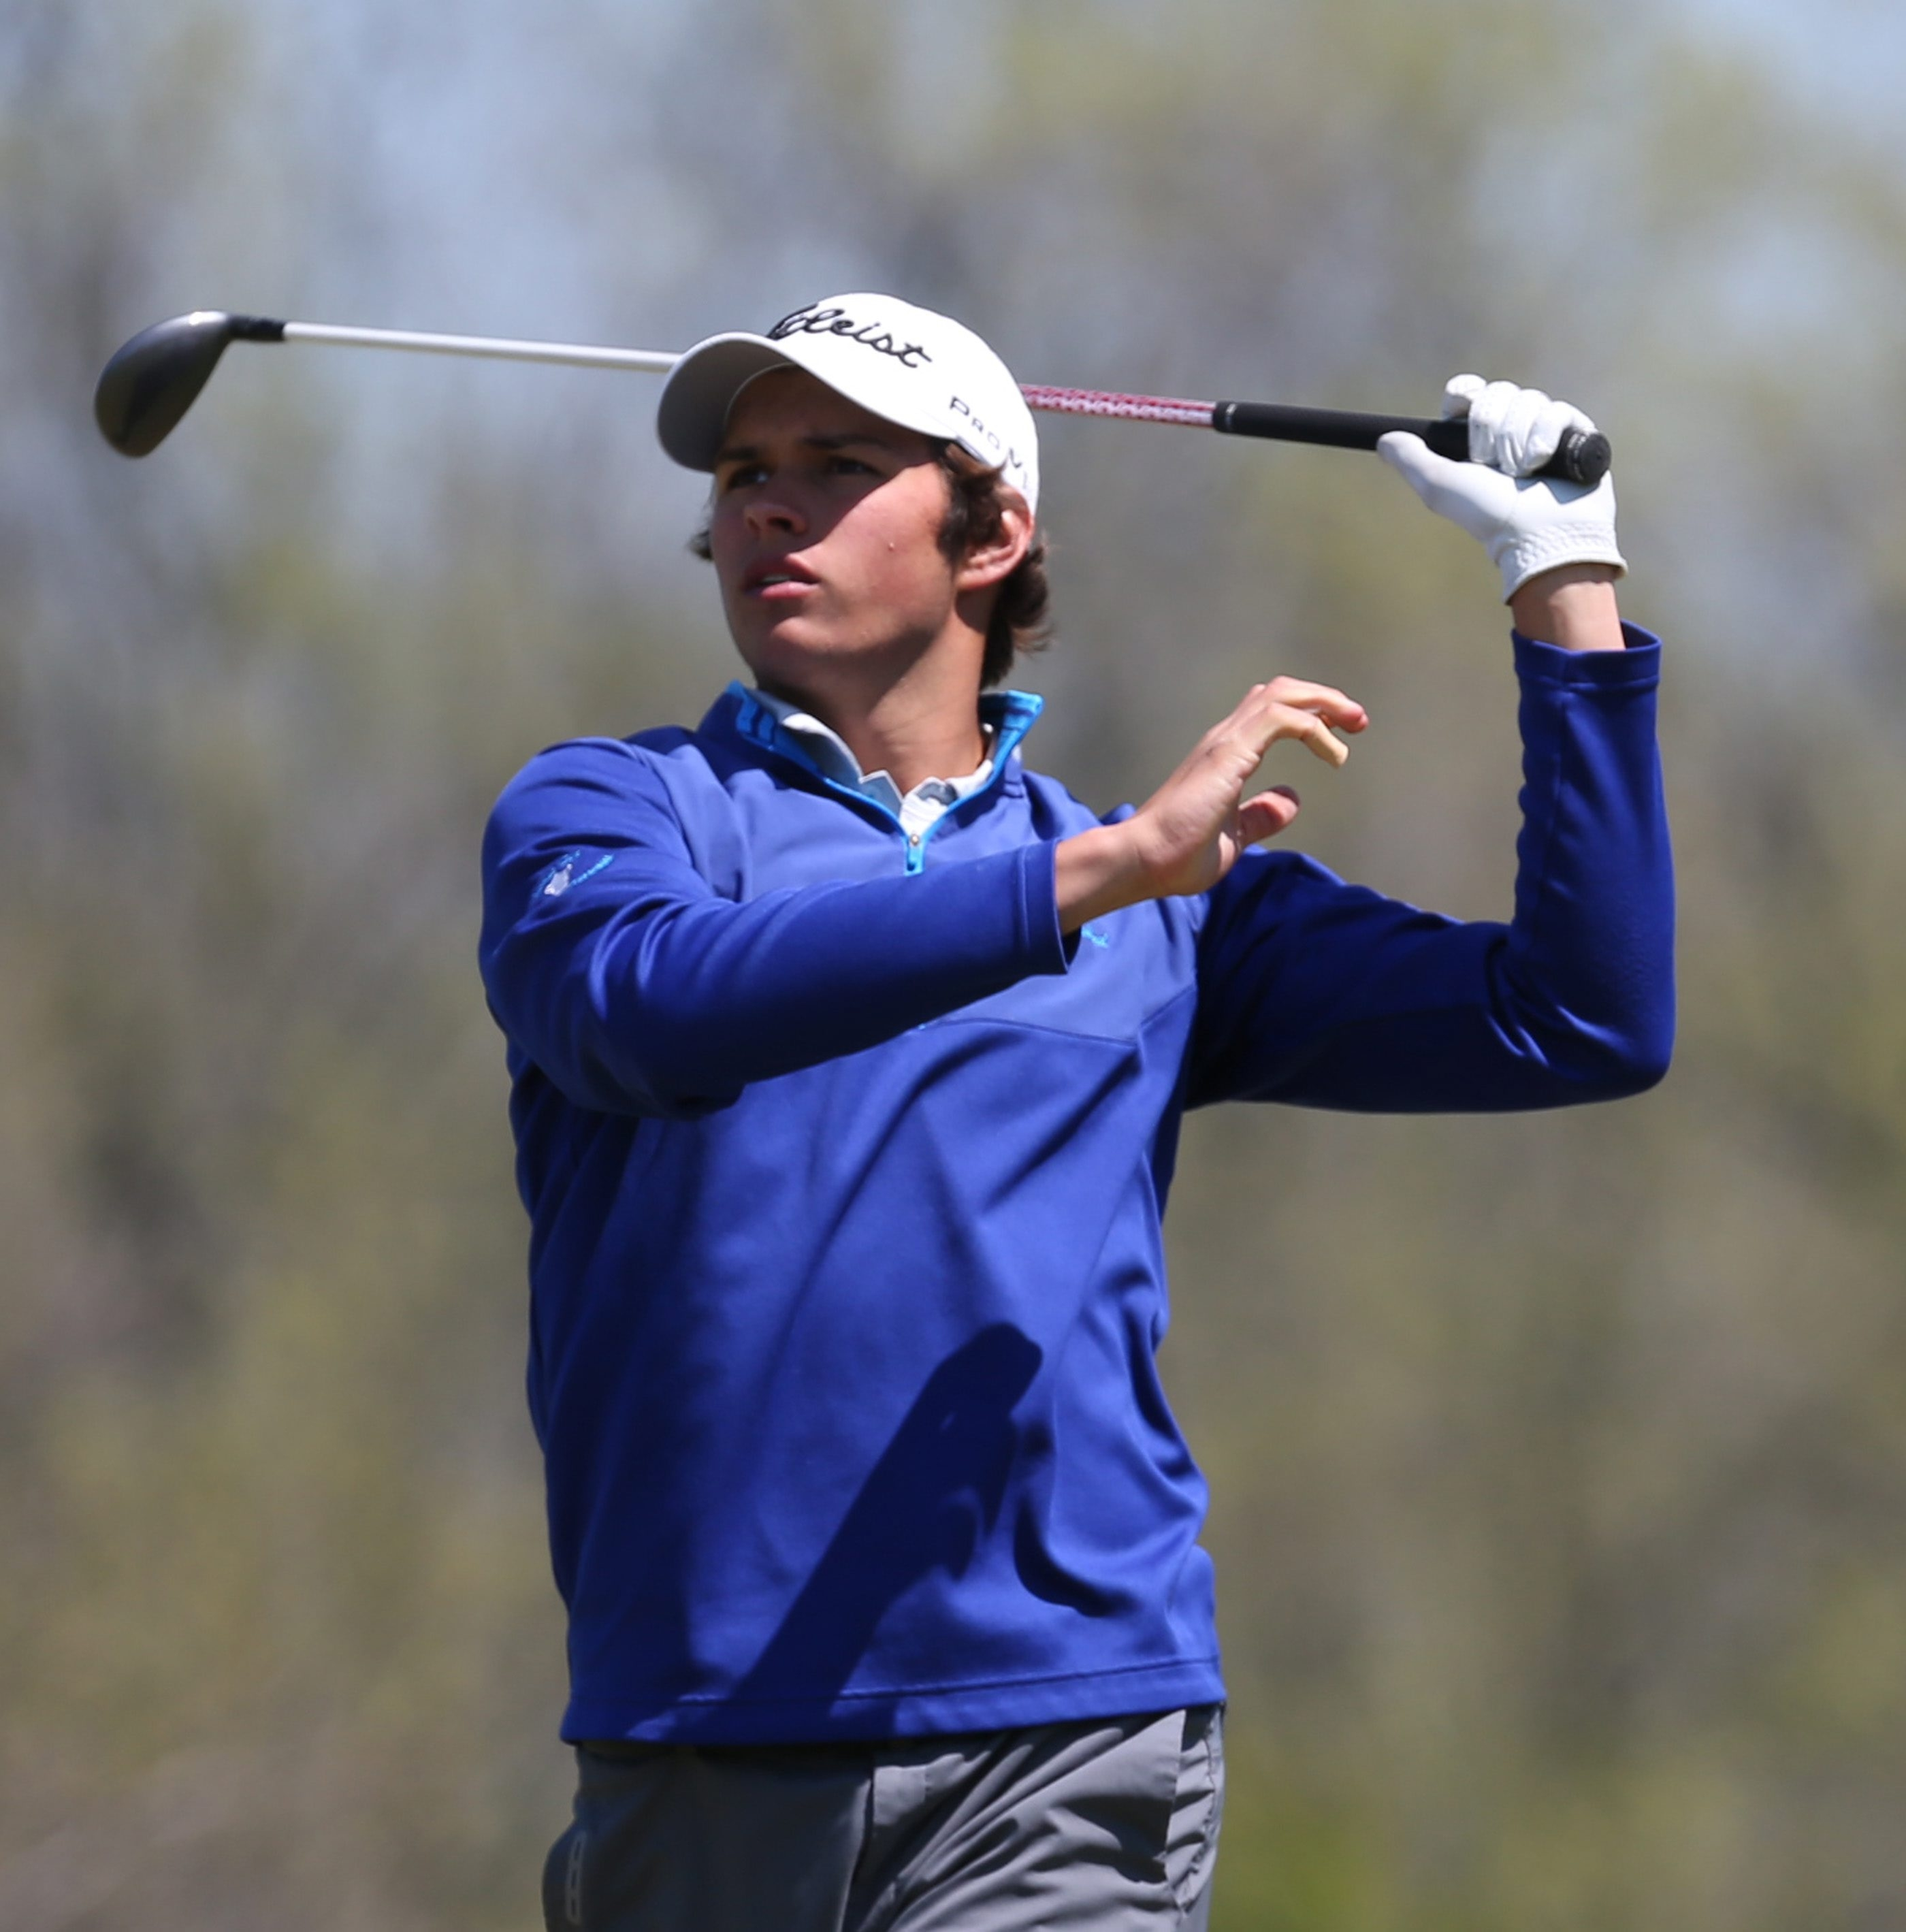 Ben Reichert watches his tee shot take flight on the 11th hole during the Section VI boys golf state qualifier at River Oaks Golf Club. Reichert is going to states for the fourth time in his career.